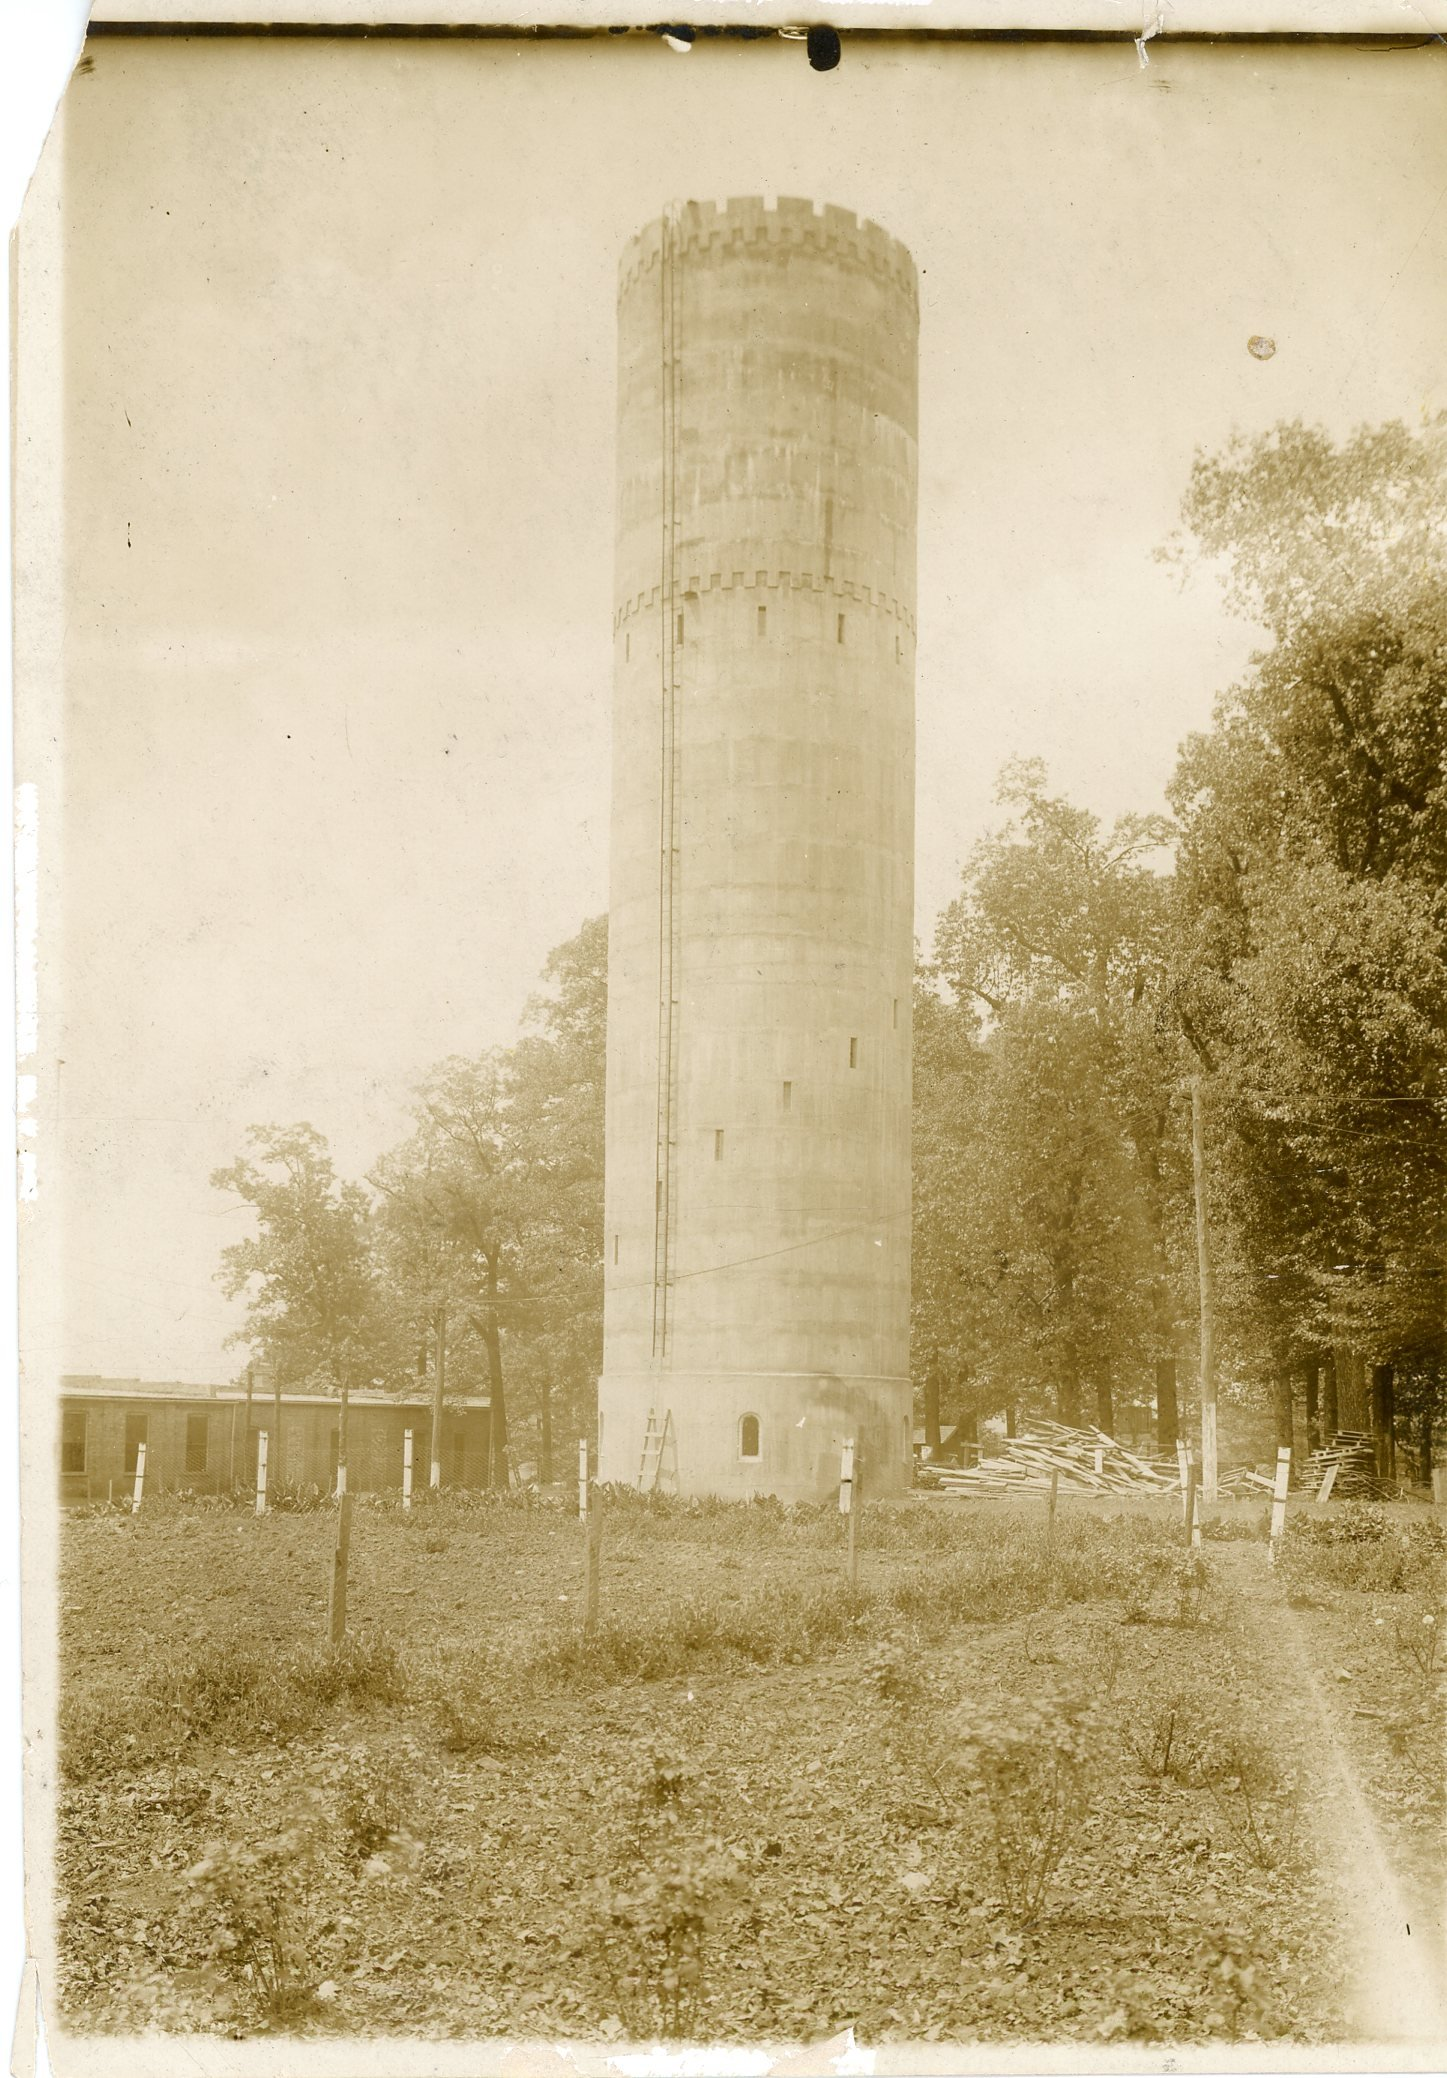 This image of the Tower shows how undeveloped campus was at the time of its creation.